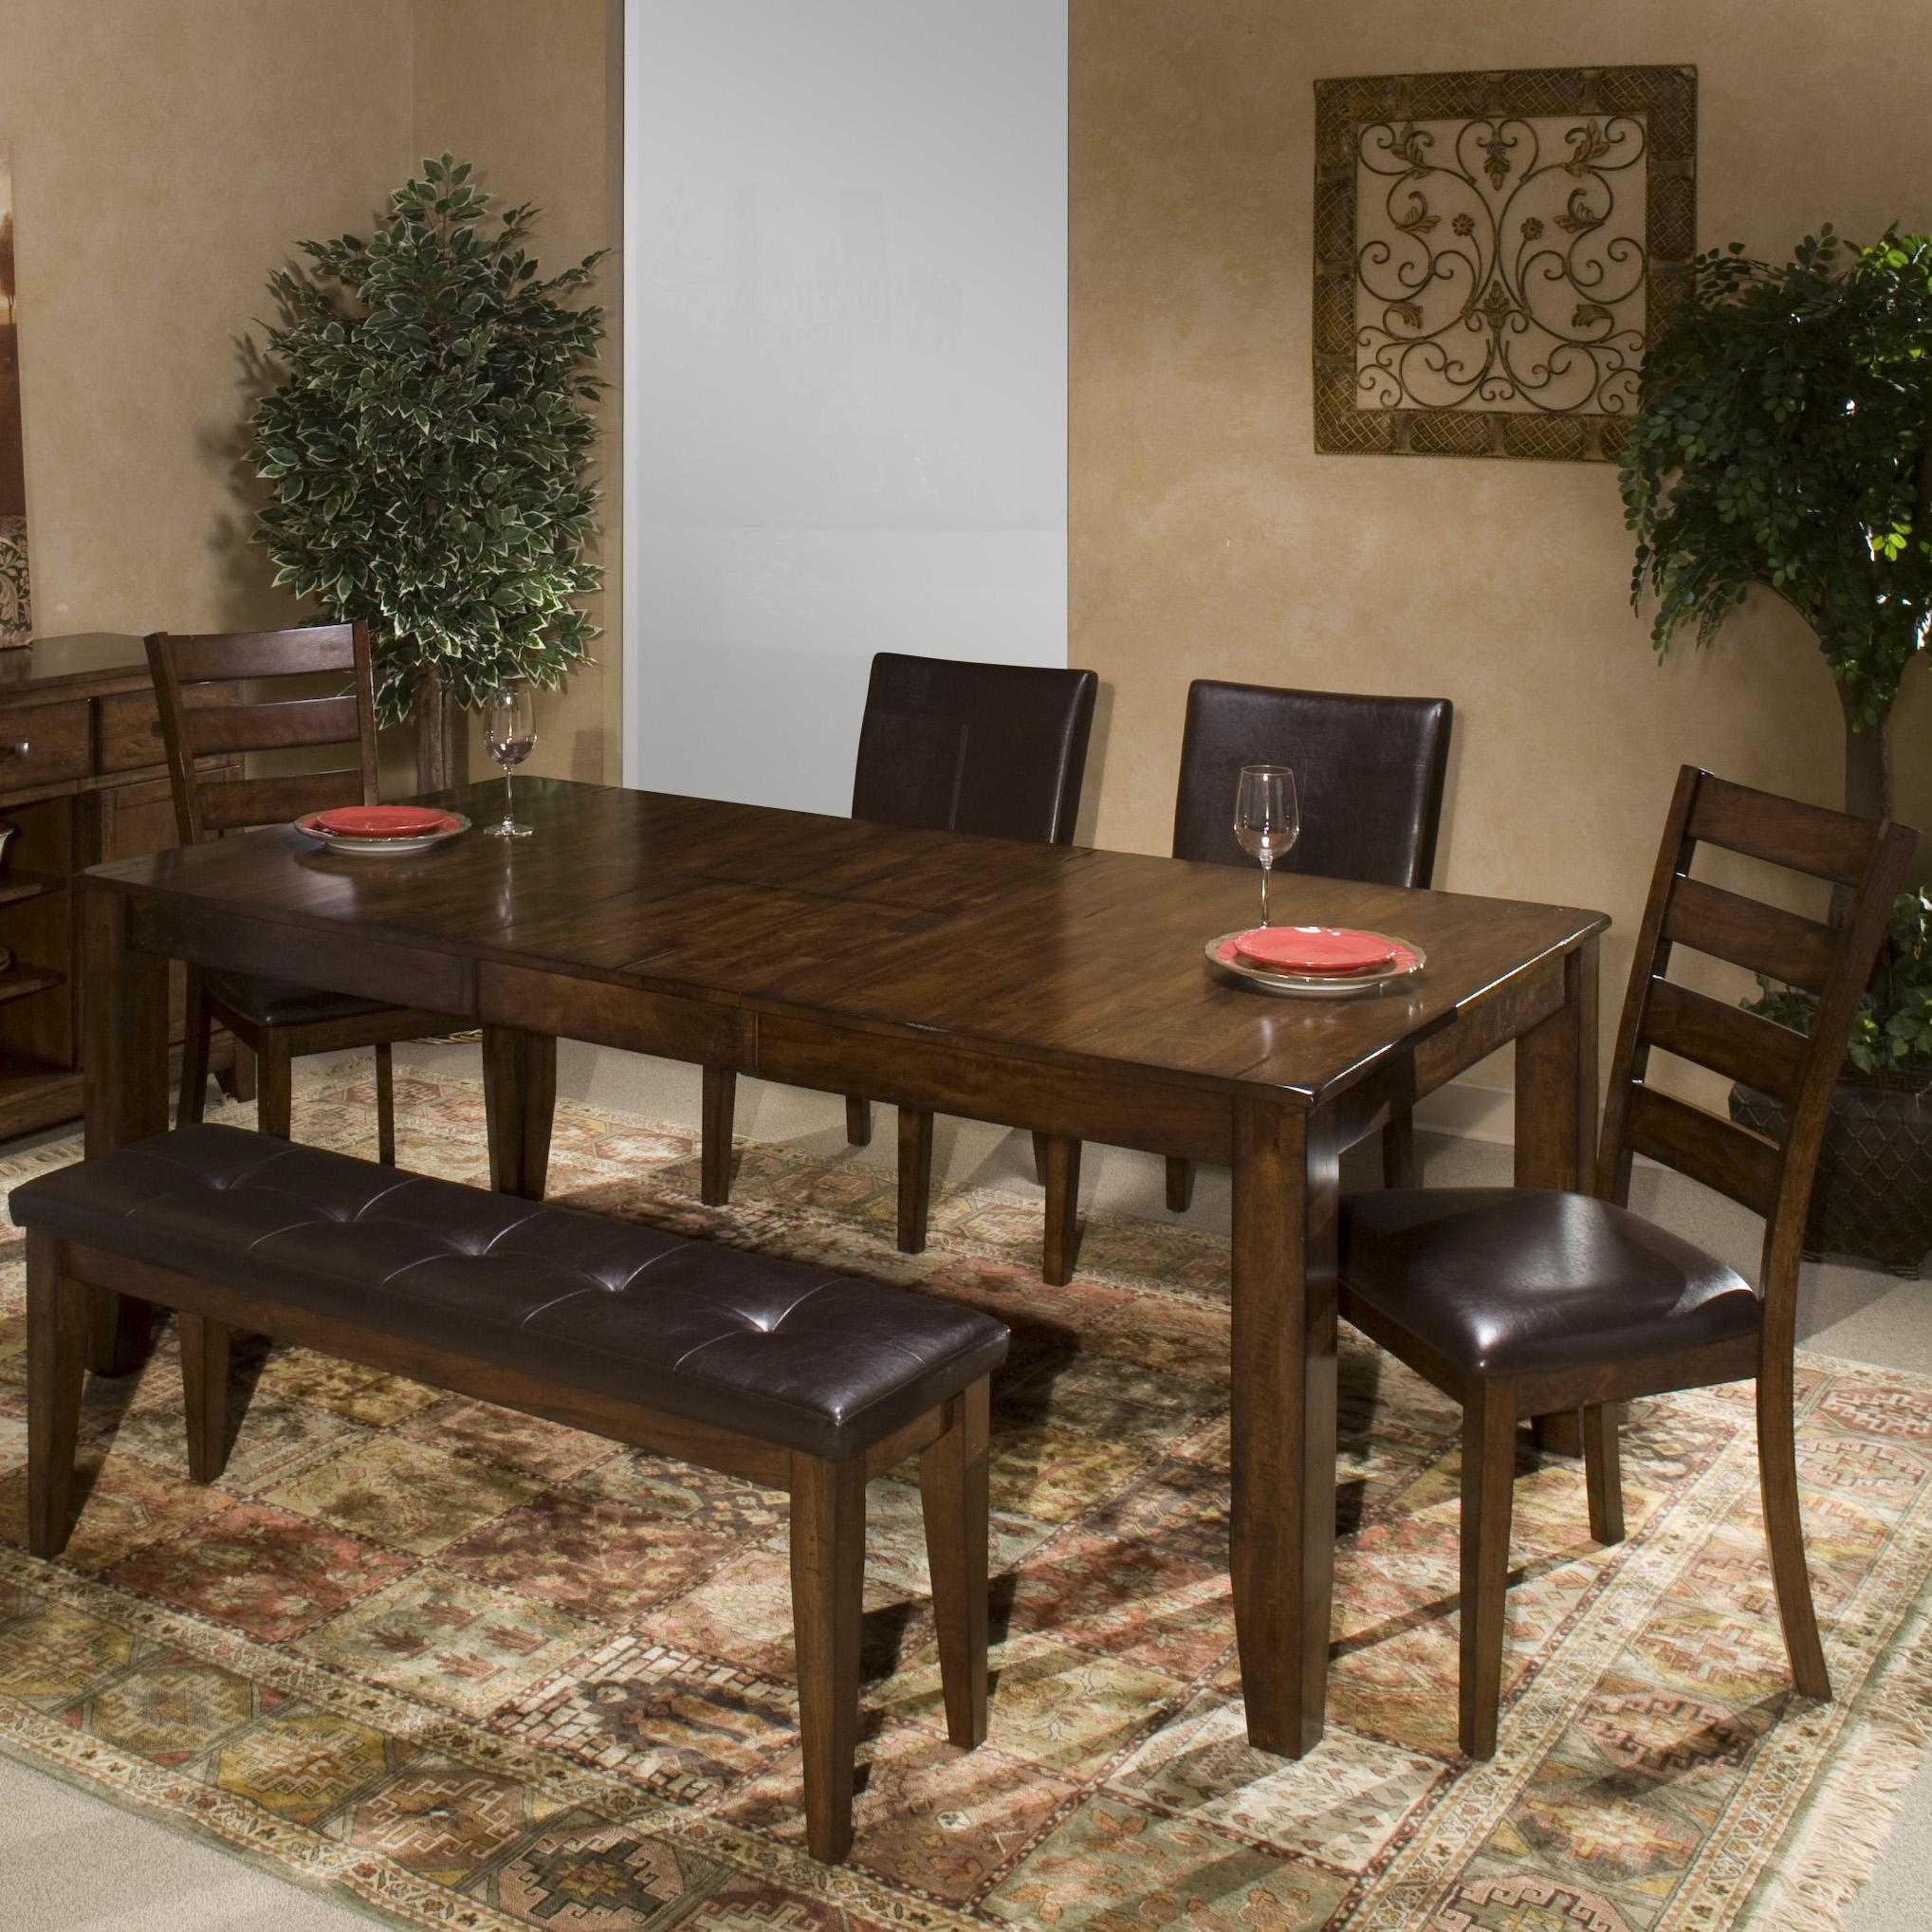 Kona 6 Piece Dining Room Set With Parson S And Ladder Back Side Chairs By Intercon At Darvin Furniture